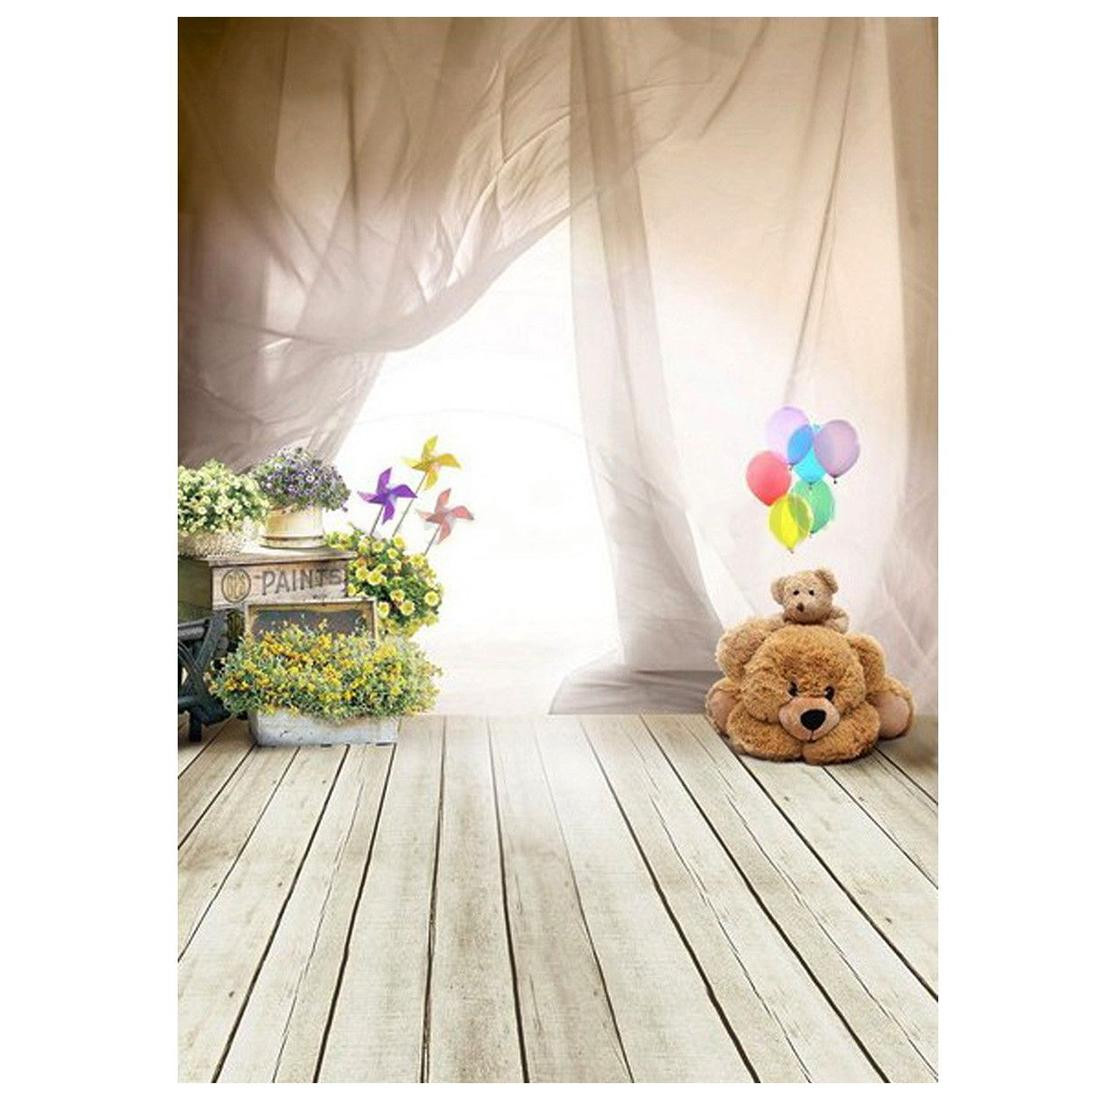 buy hardwood flooring online of ces 1m x 1 5m lovely bear floor balloon studio backdrops children intended for ces 1m x 1 5m lovely bear floor balloon studio backdrops children photography background photography background studio backdrop backdrop children online